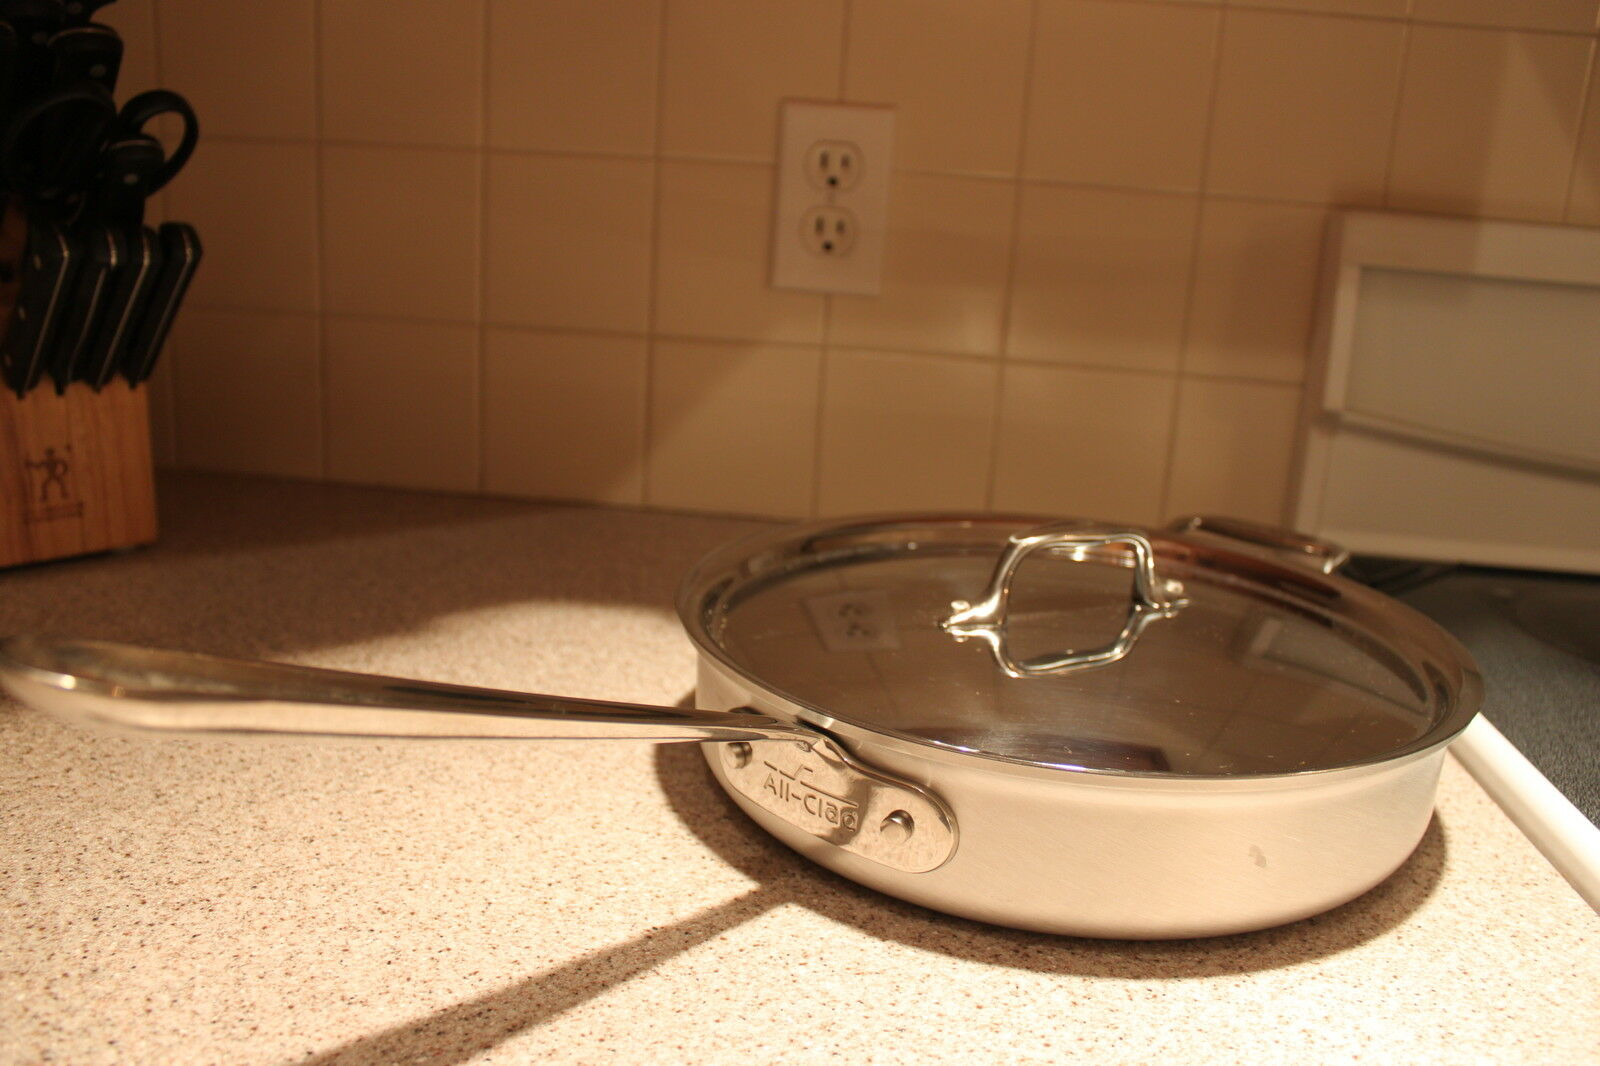 New All Clad MC MC MC 2, 3 quart Sauce  pan with lid.  No box  New 5aa75f